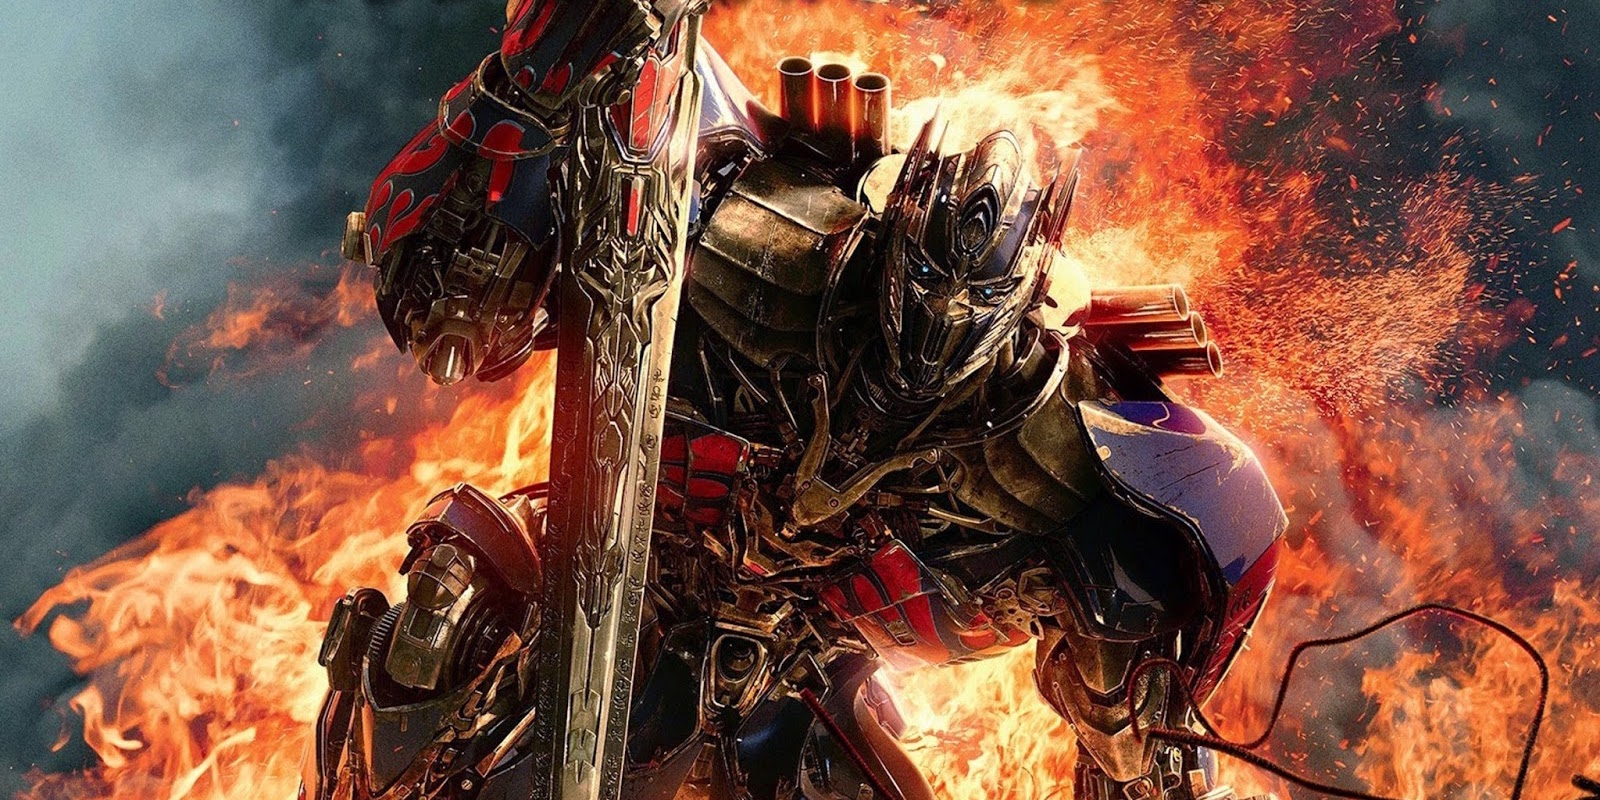 transformers-5-last-knight-hasbro-studios-michael-bay